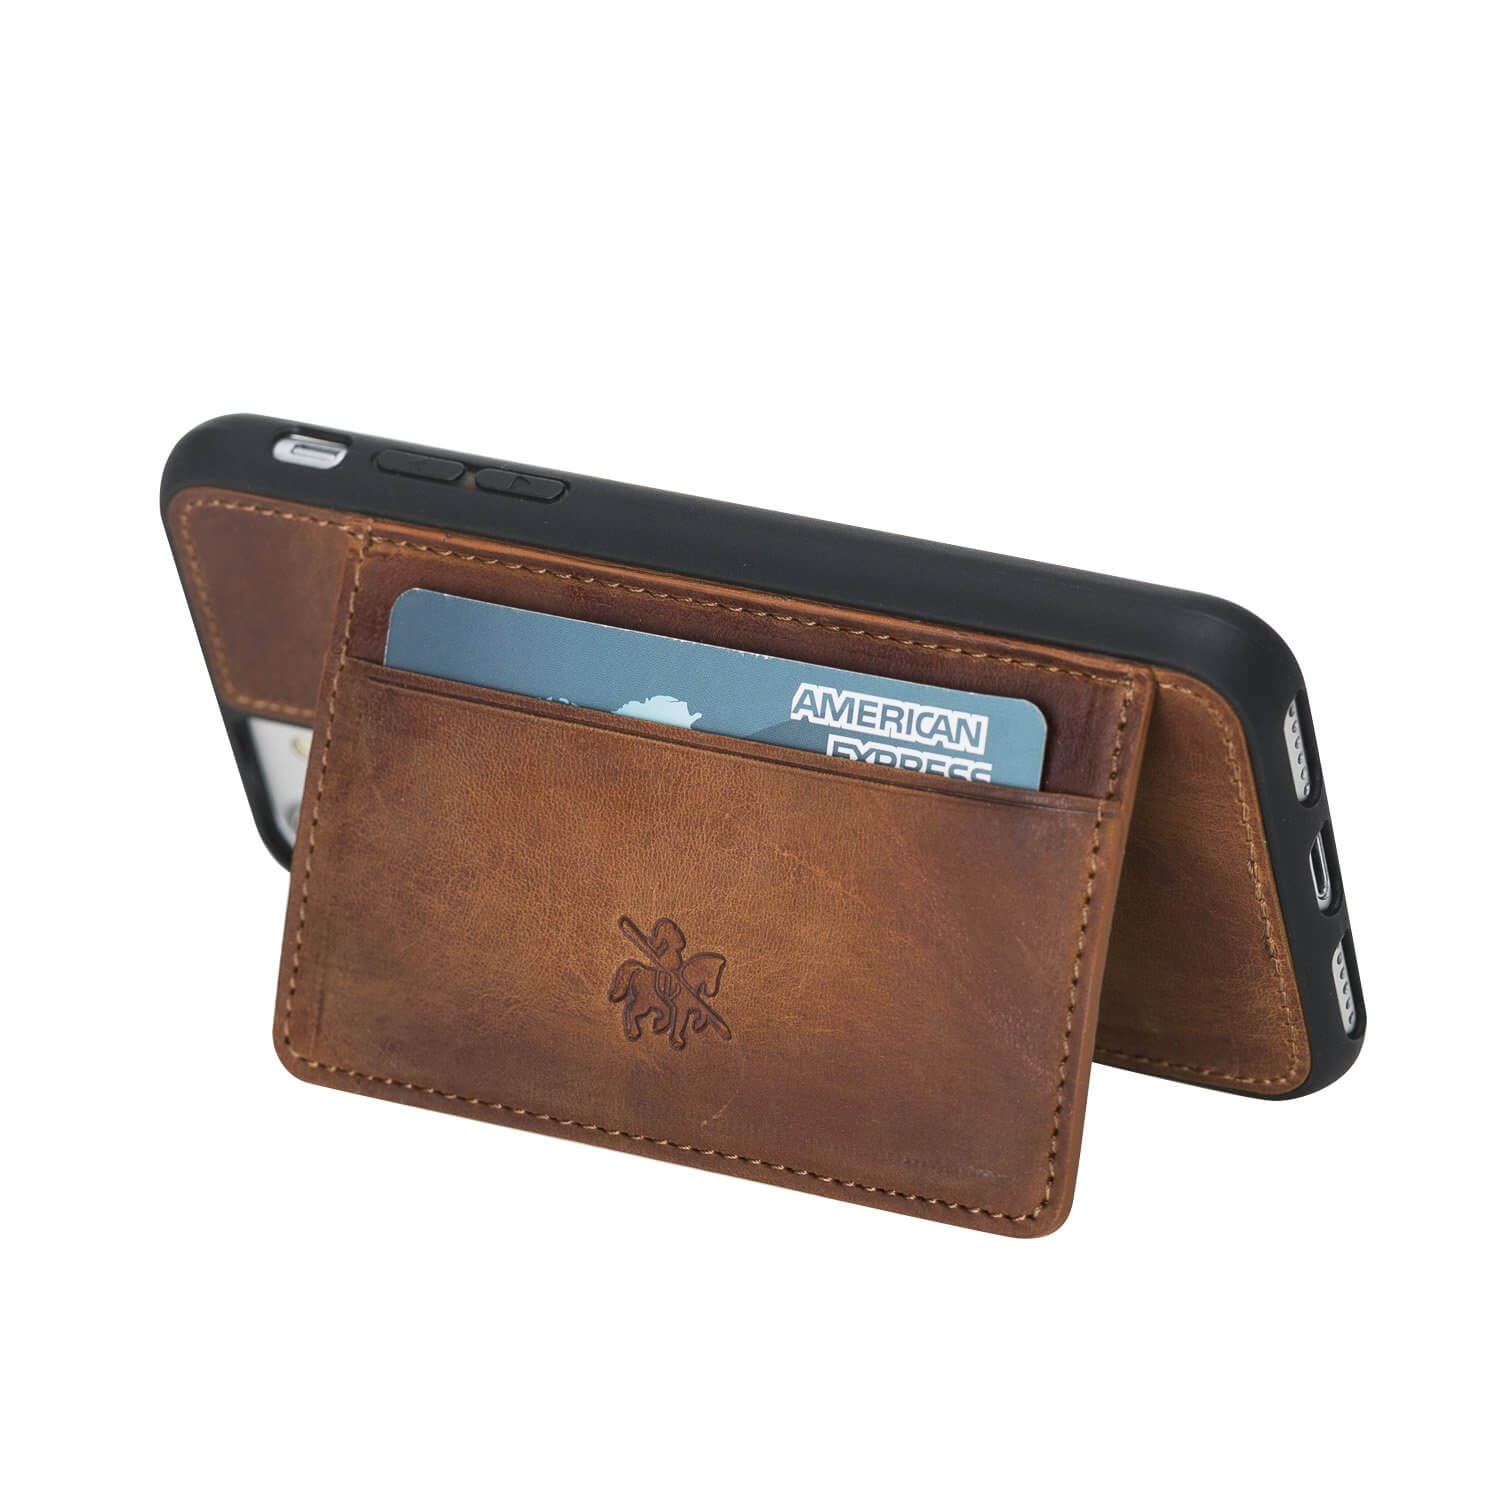 Pisa Snap On Leather Wallet Case with Stand for iPhone 8